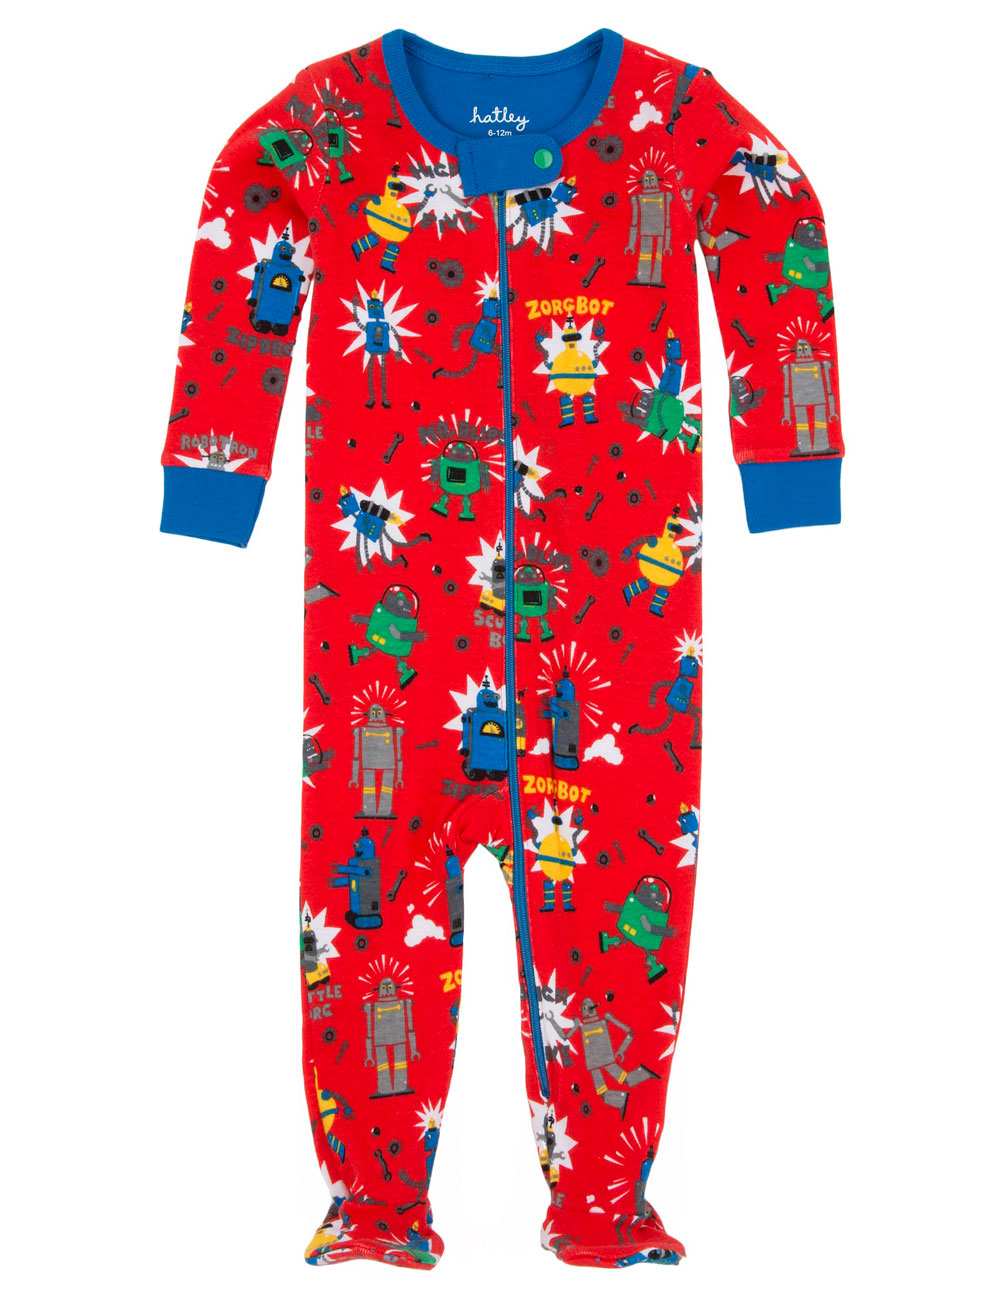 Hatley Babygro with feet - Robots - 3-6mts (2)